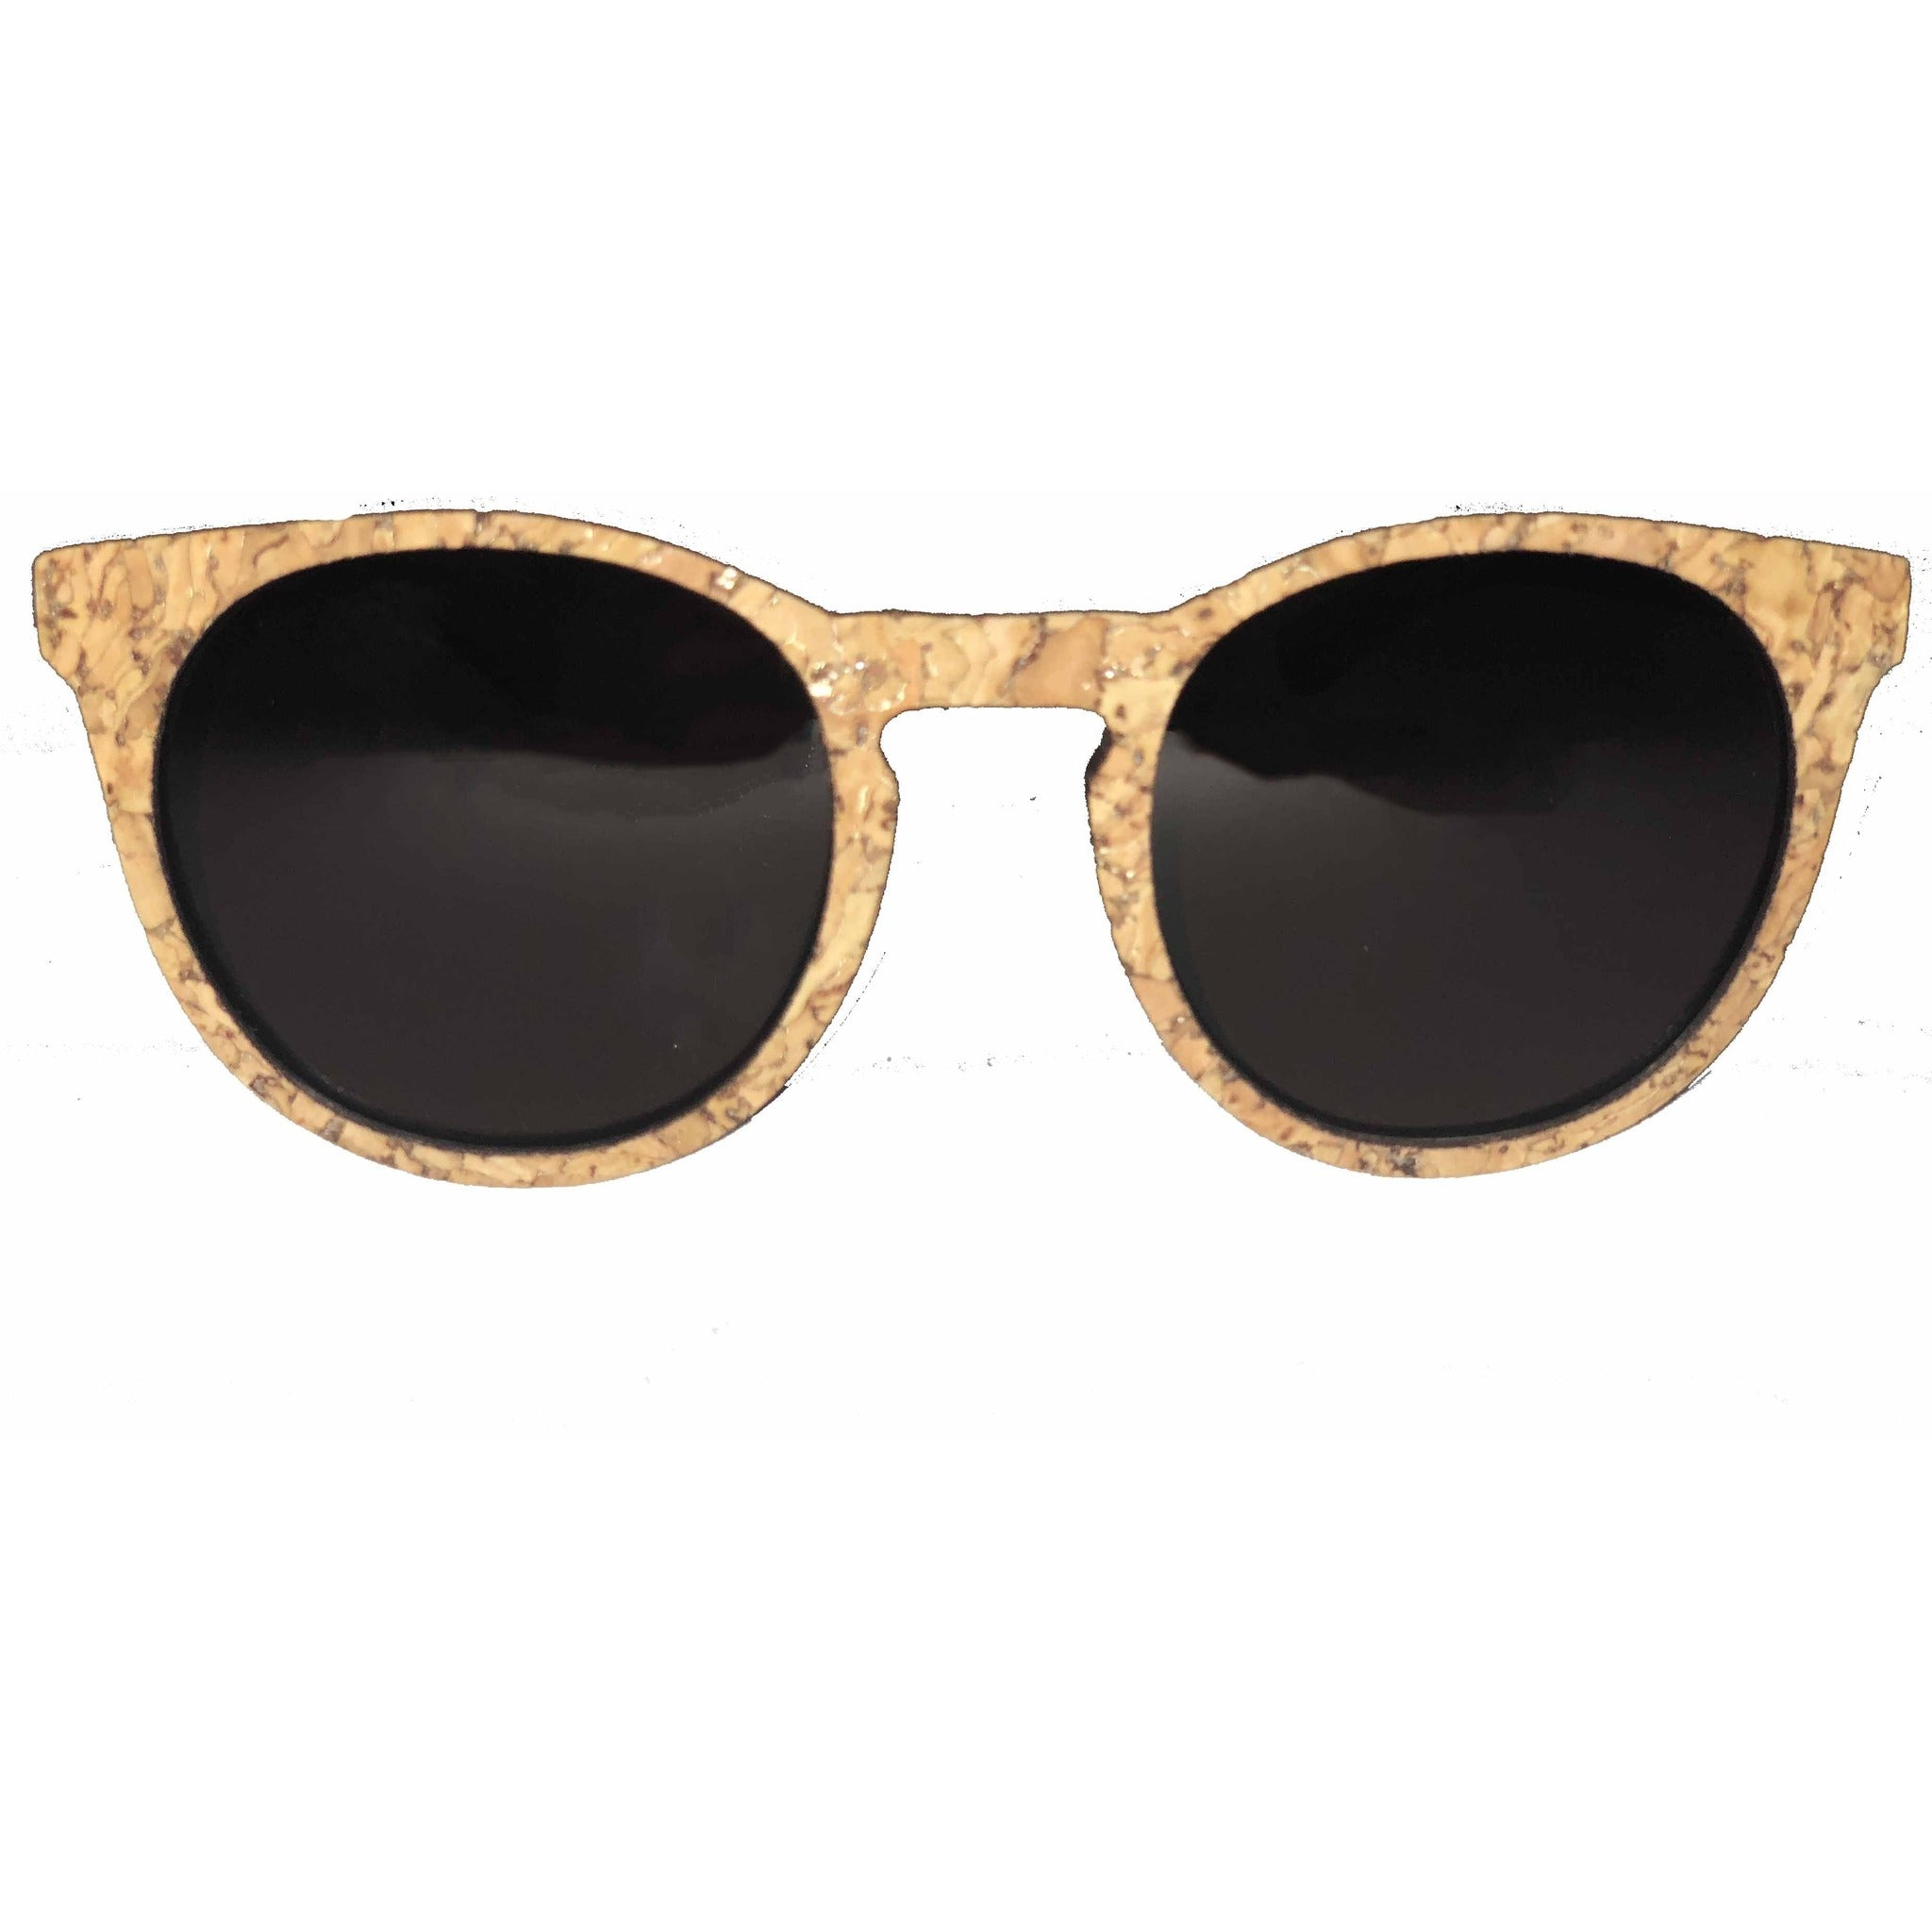 queork cork sunglasses round natural